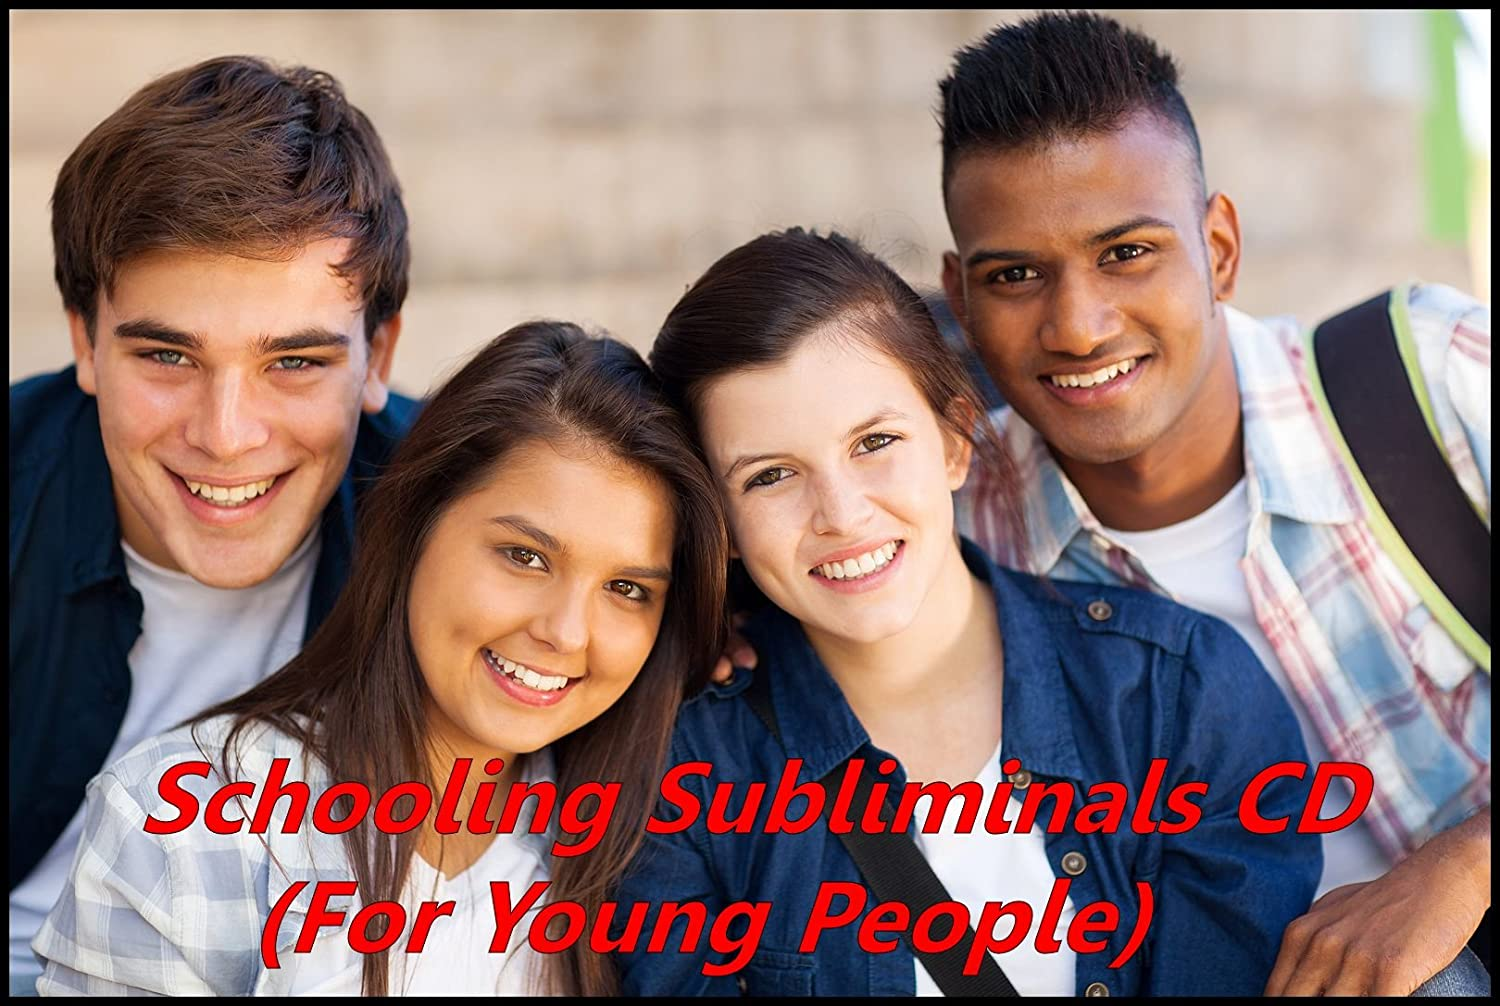 Schooling Subliminals for Young People Threshold Subliminal with Piano Moods Music CD